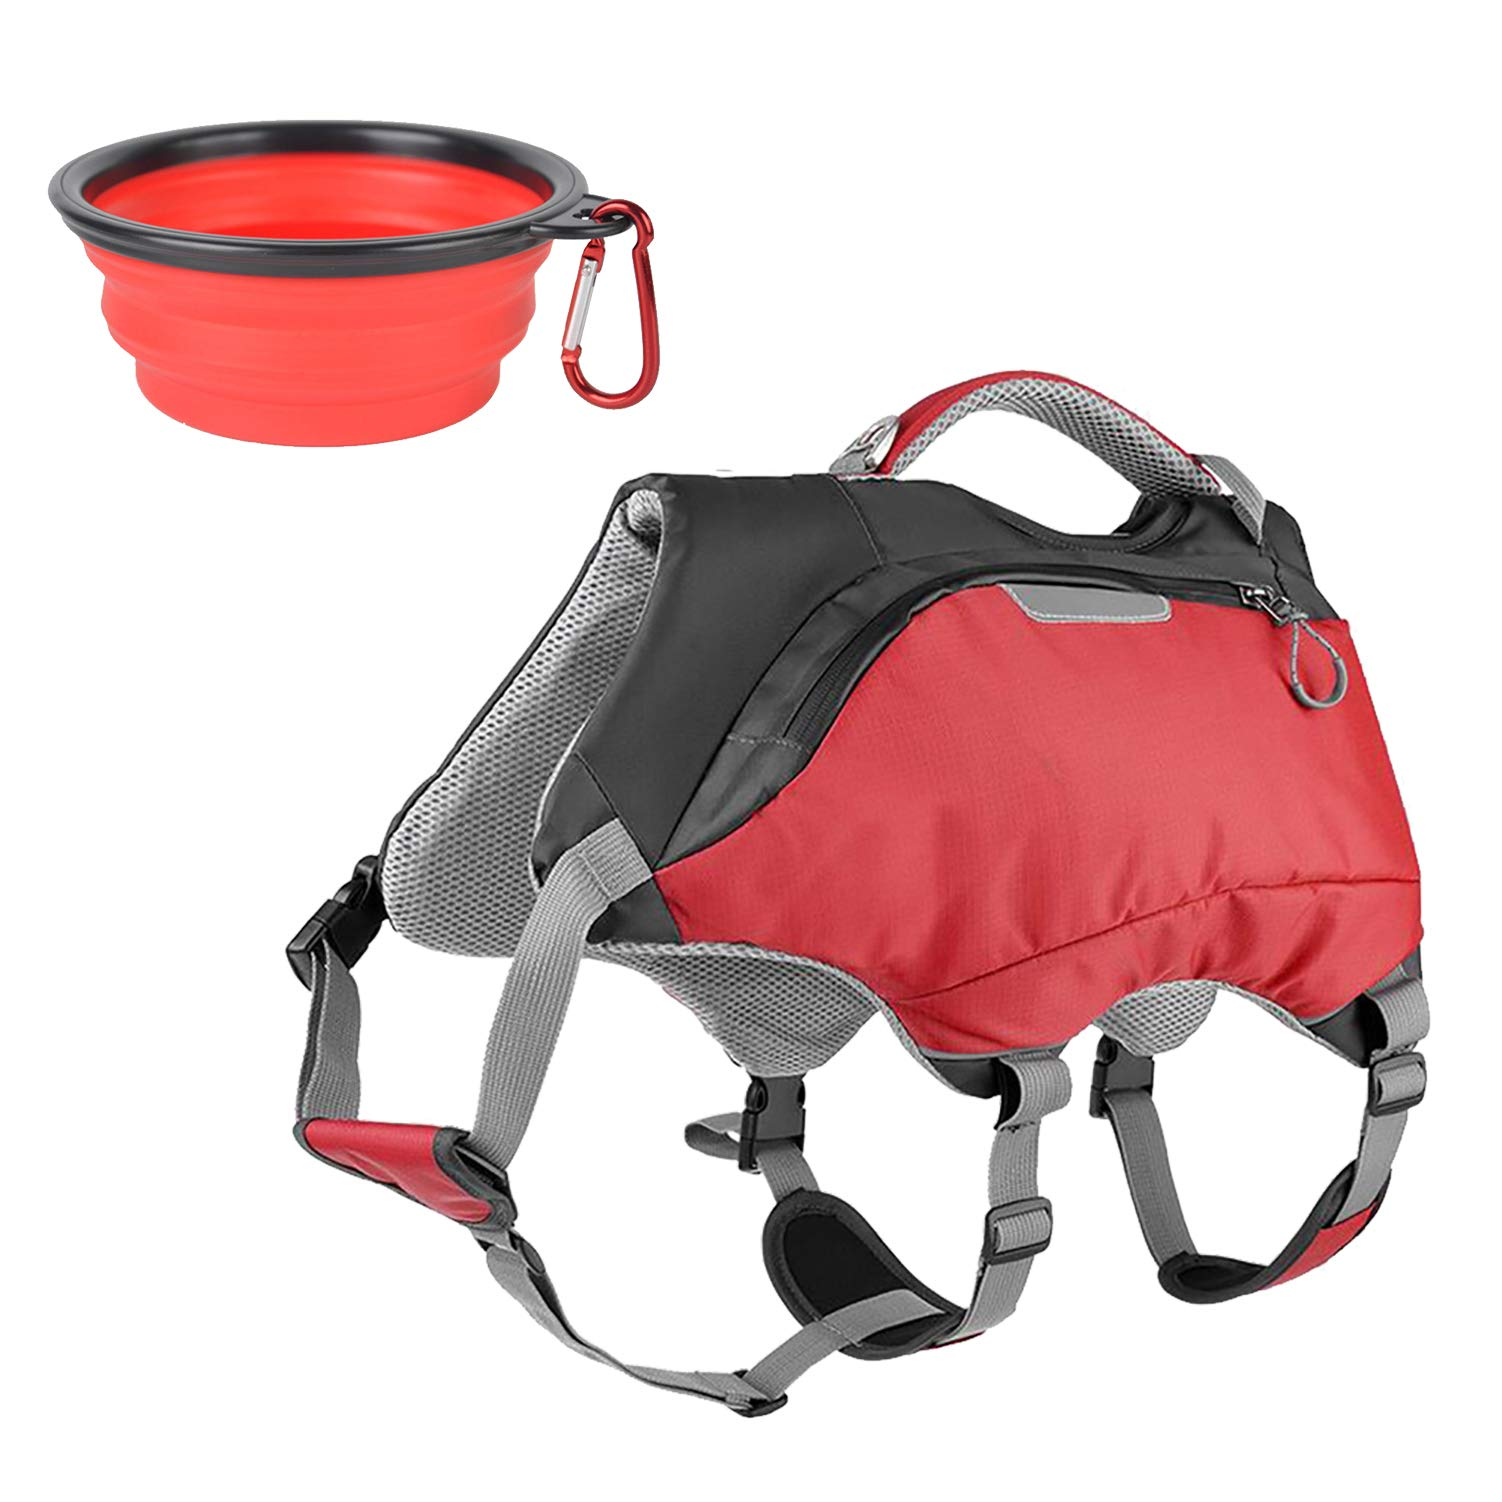 Ultrafun 2 in 1 Dog Life Jacket and Backpack Vest Harness Outdoor Hiking Dog Saddlebag with Collapsible Pet Bowl (Large, Red) by Ultrafun